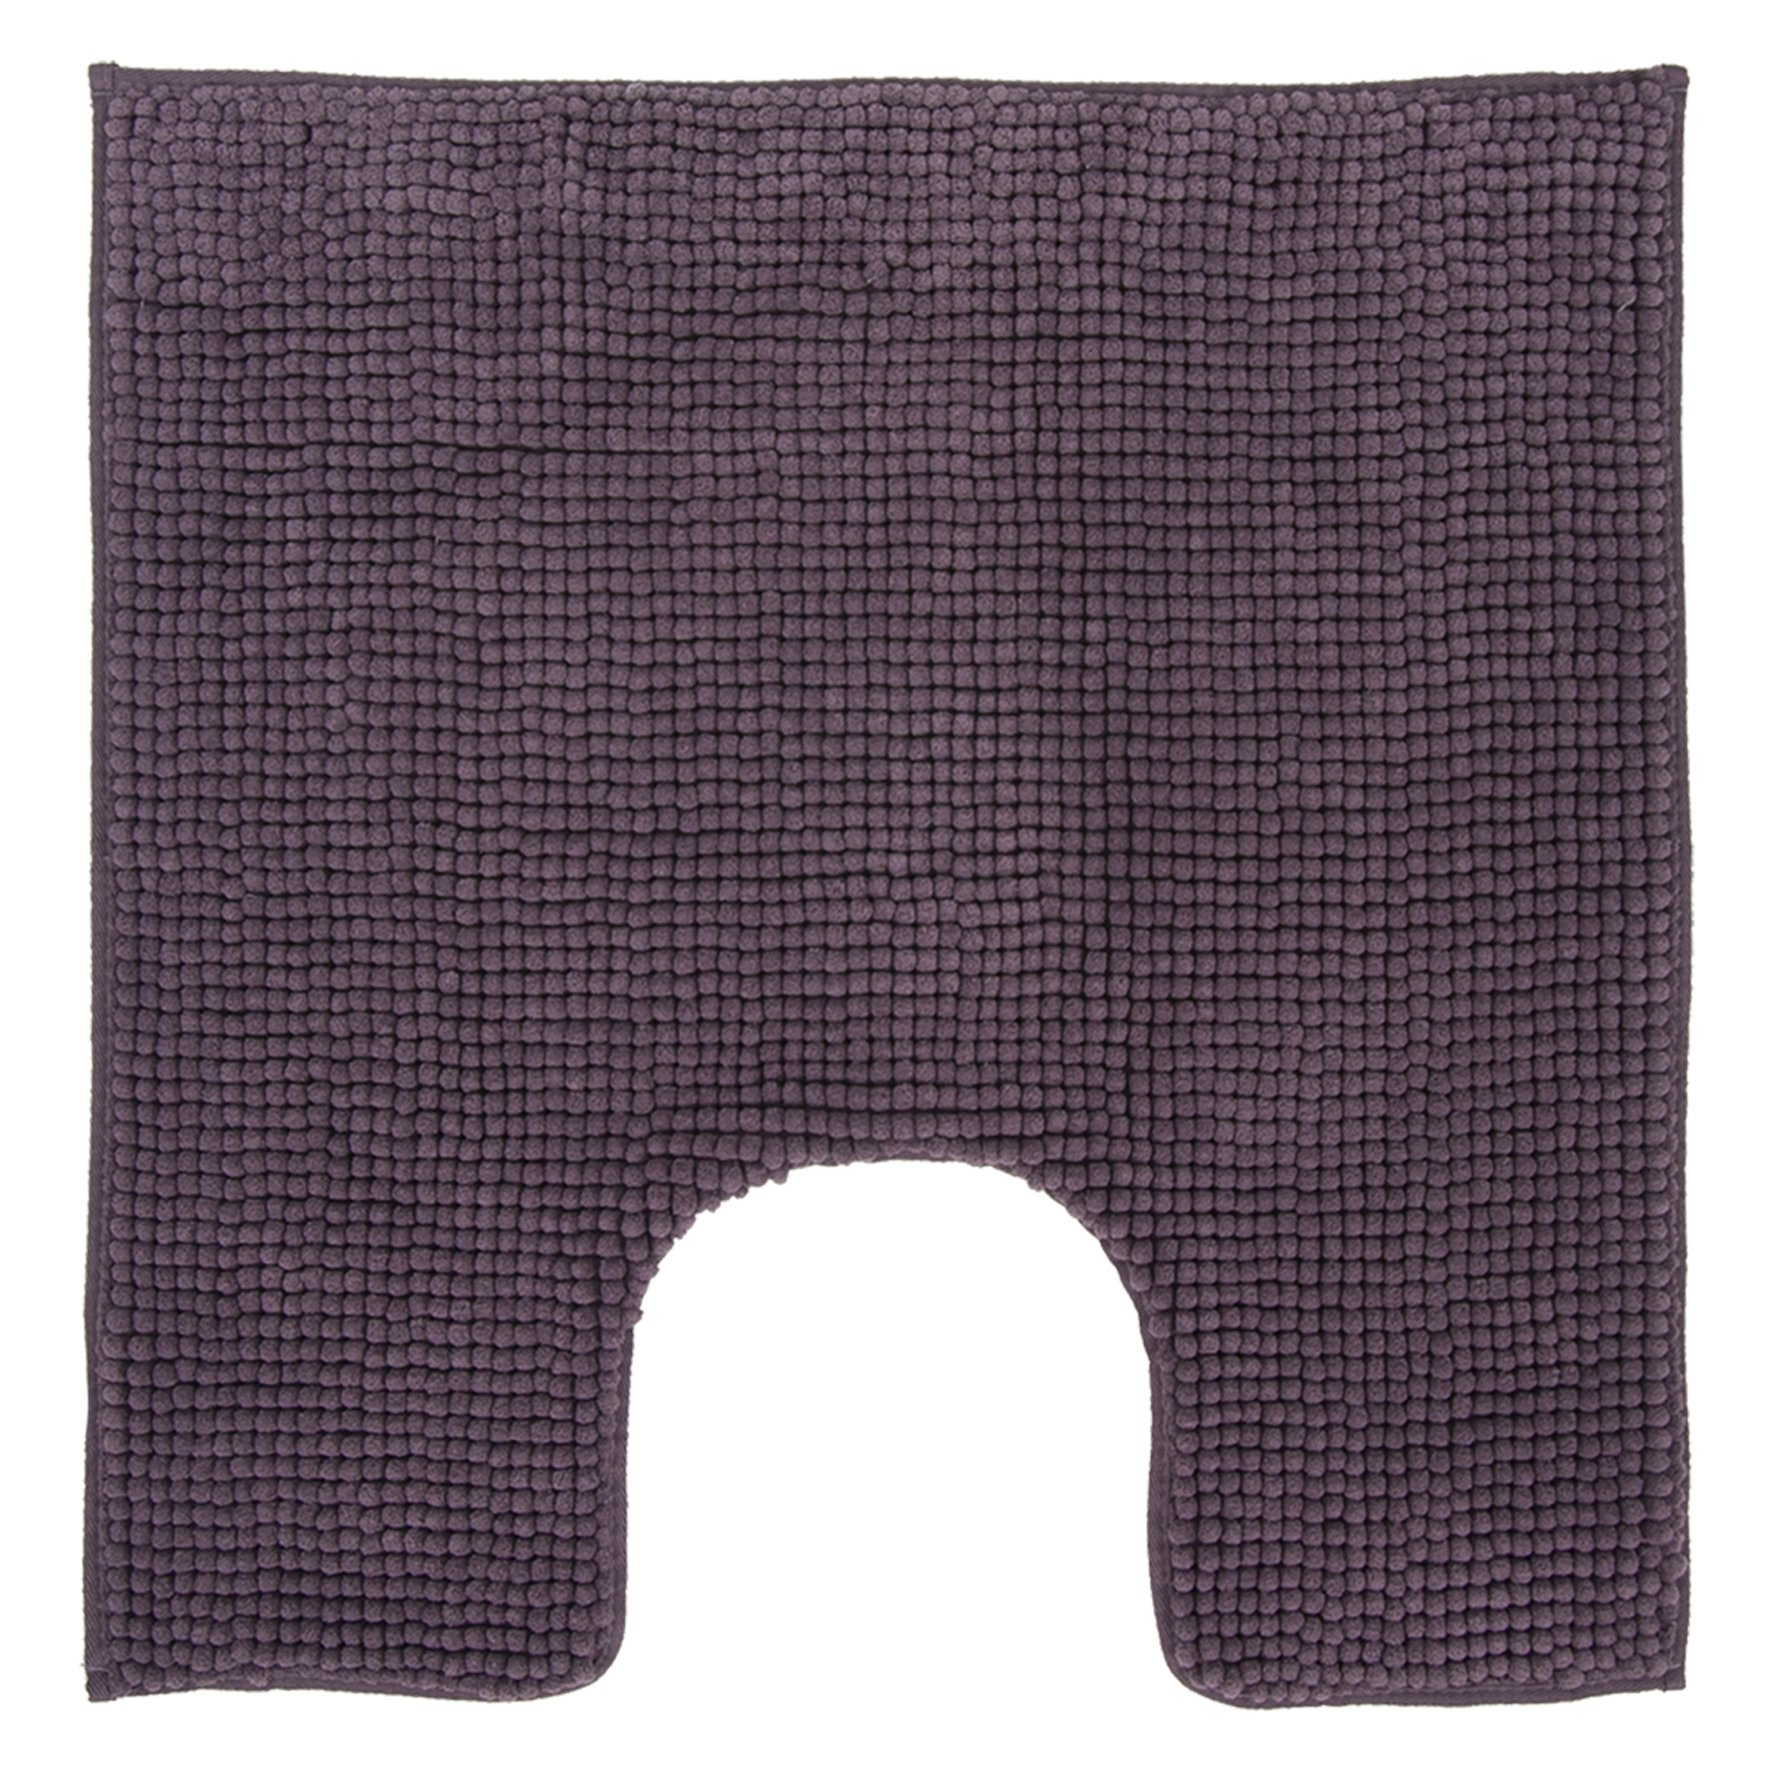 DIFFERNZ 31.102.97 Candore Bath Mat, Aubergine by Differnz